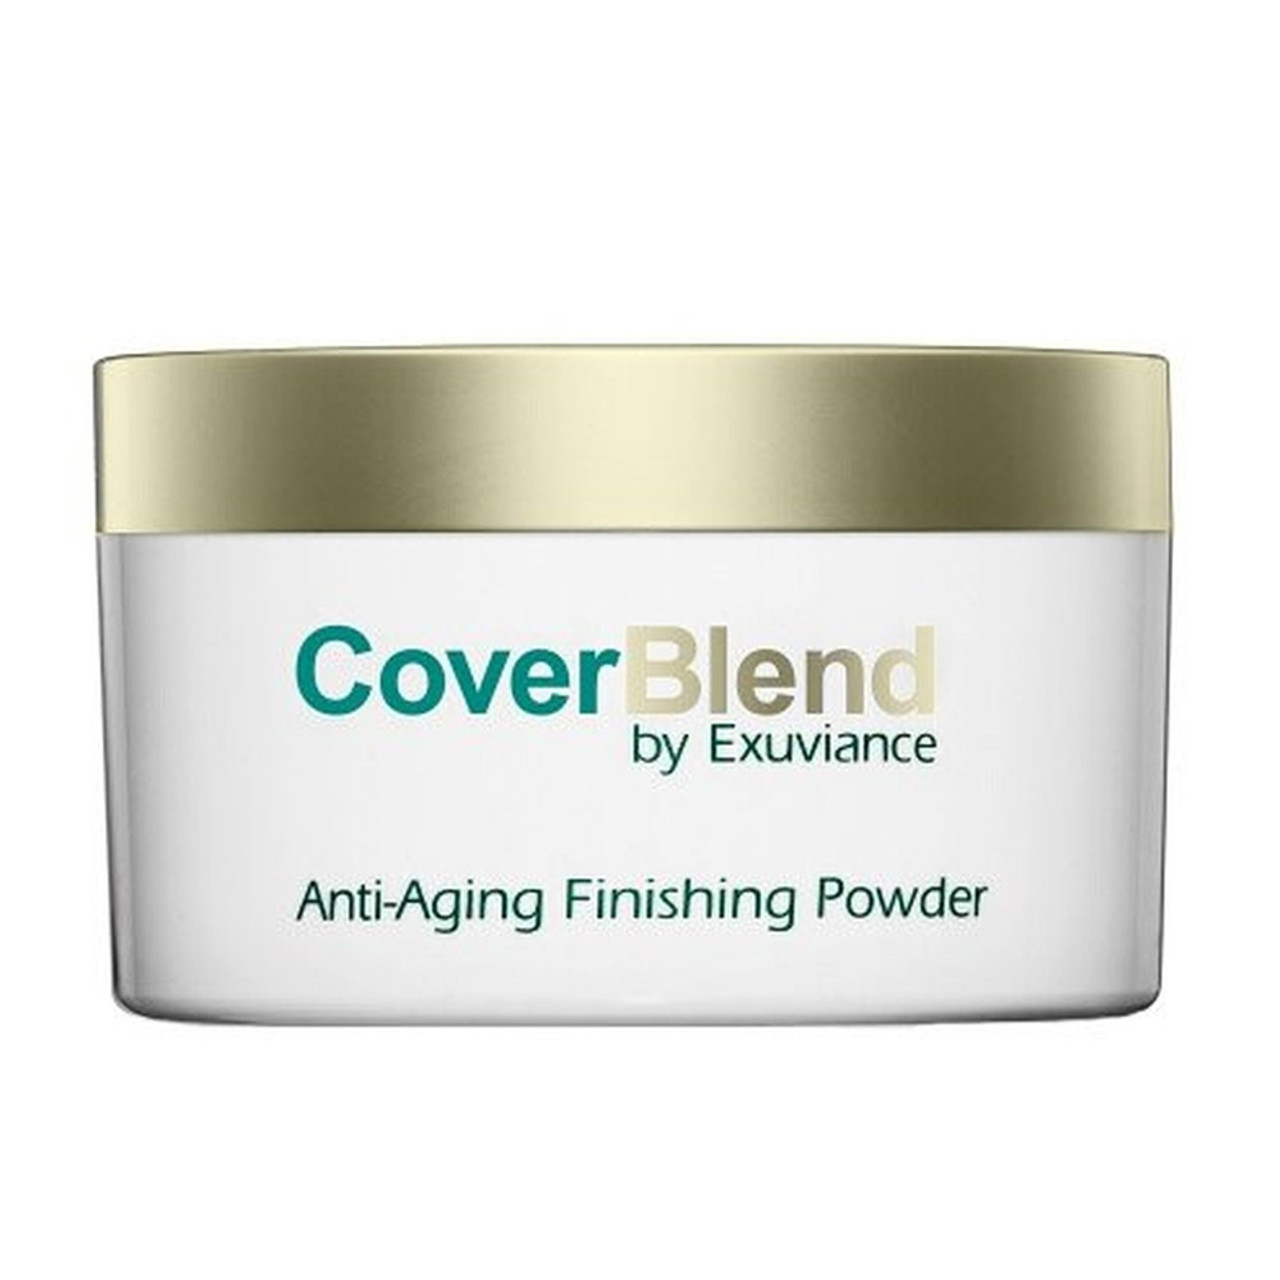 CoverBlend Anti-Aging Finishing Powder